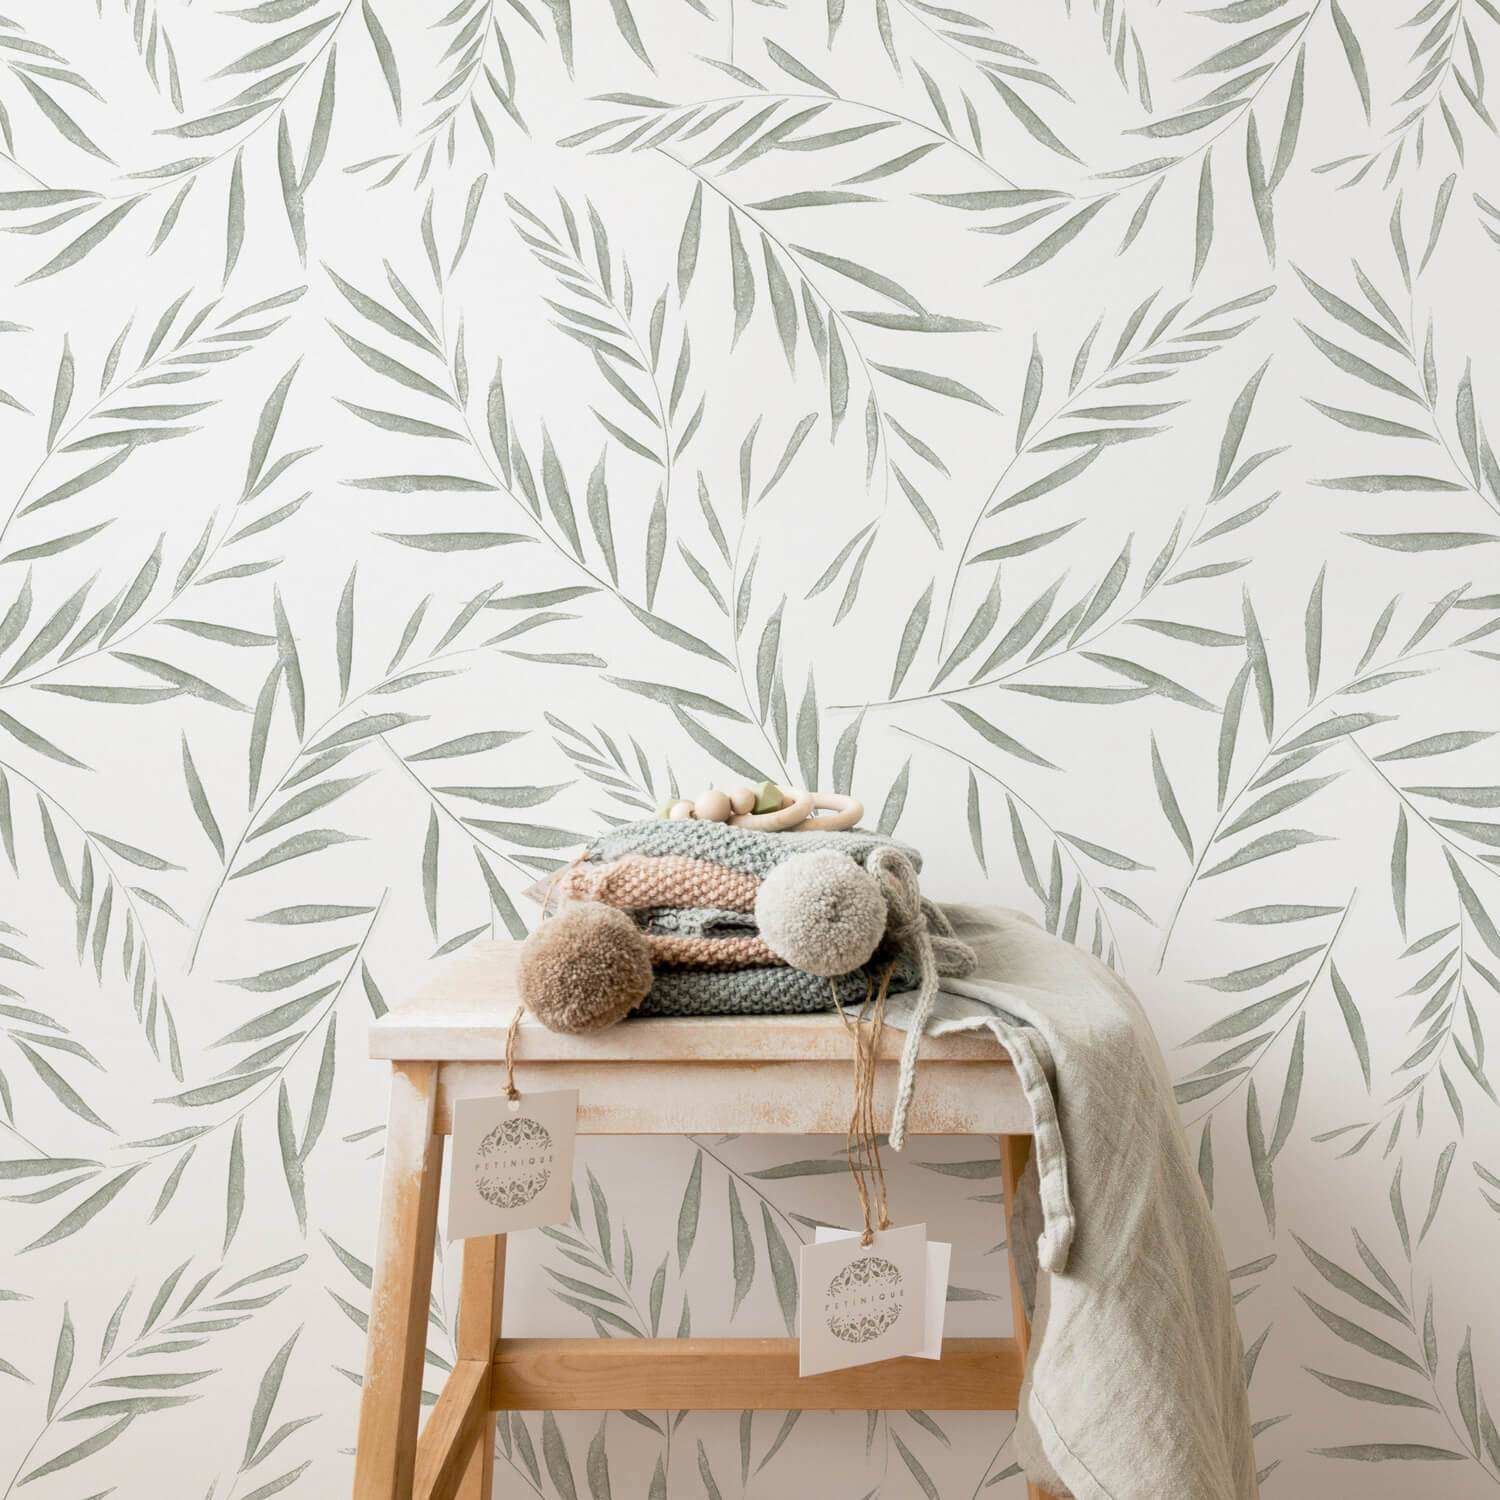 Botanical Foliage Wallpaper - Project Nursery